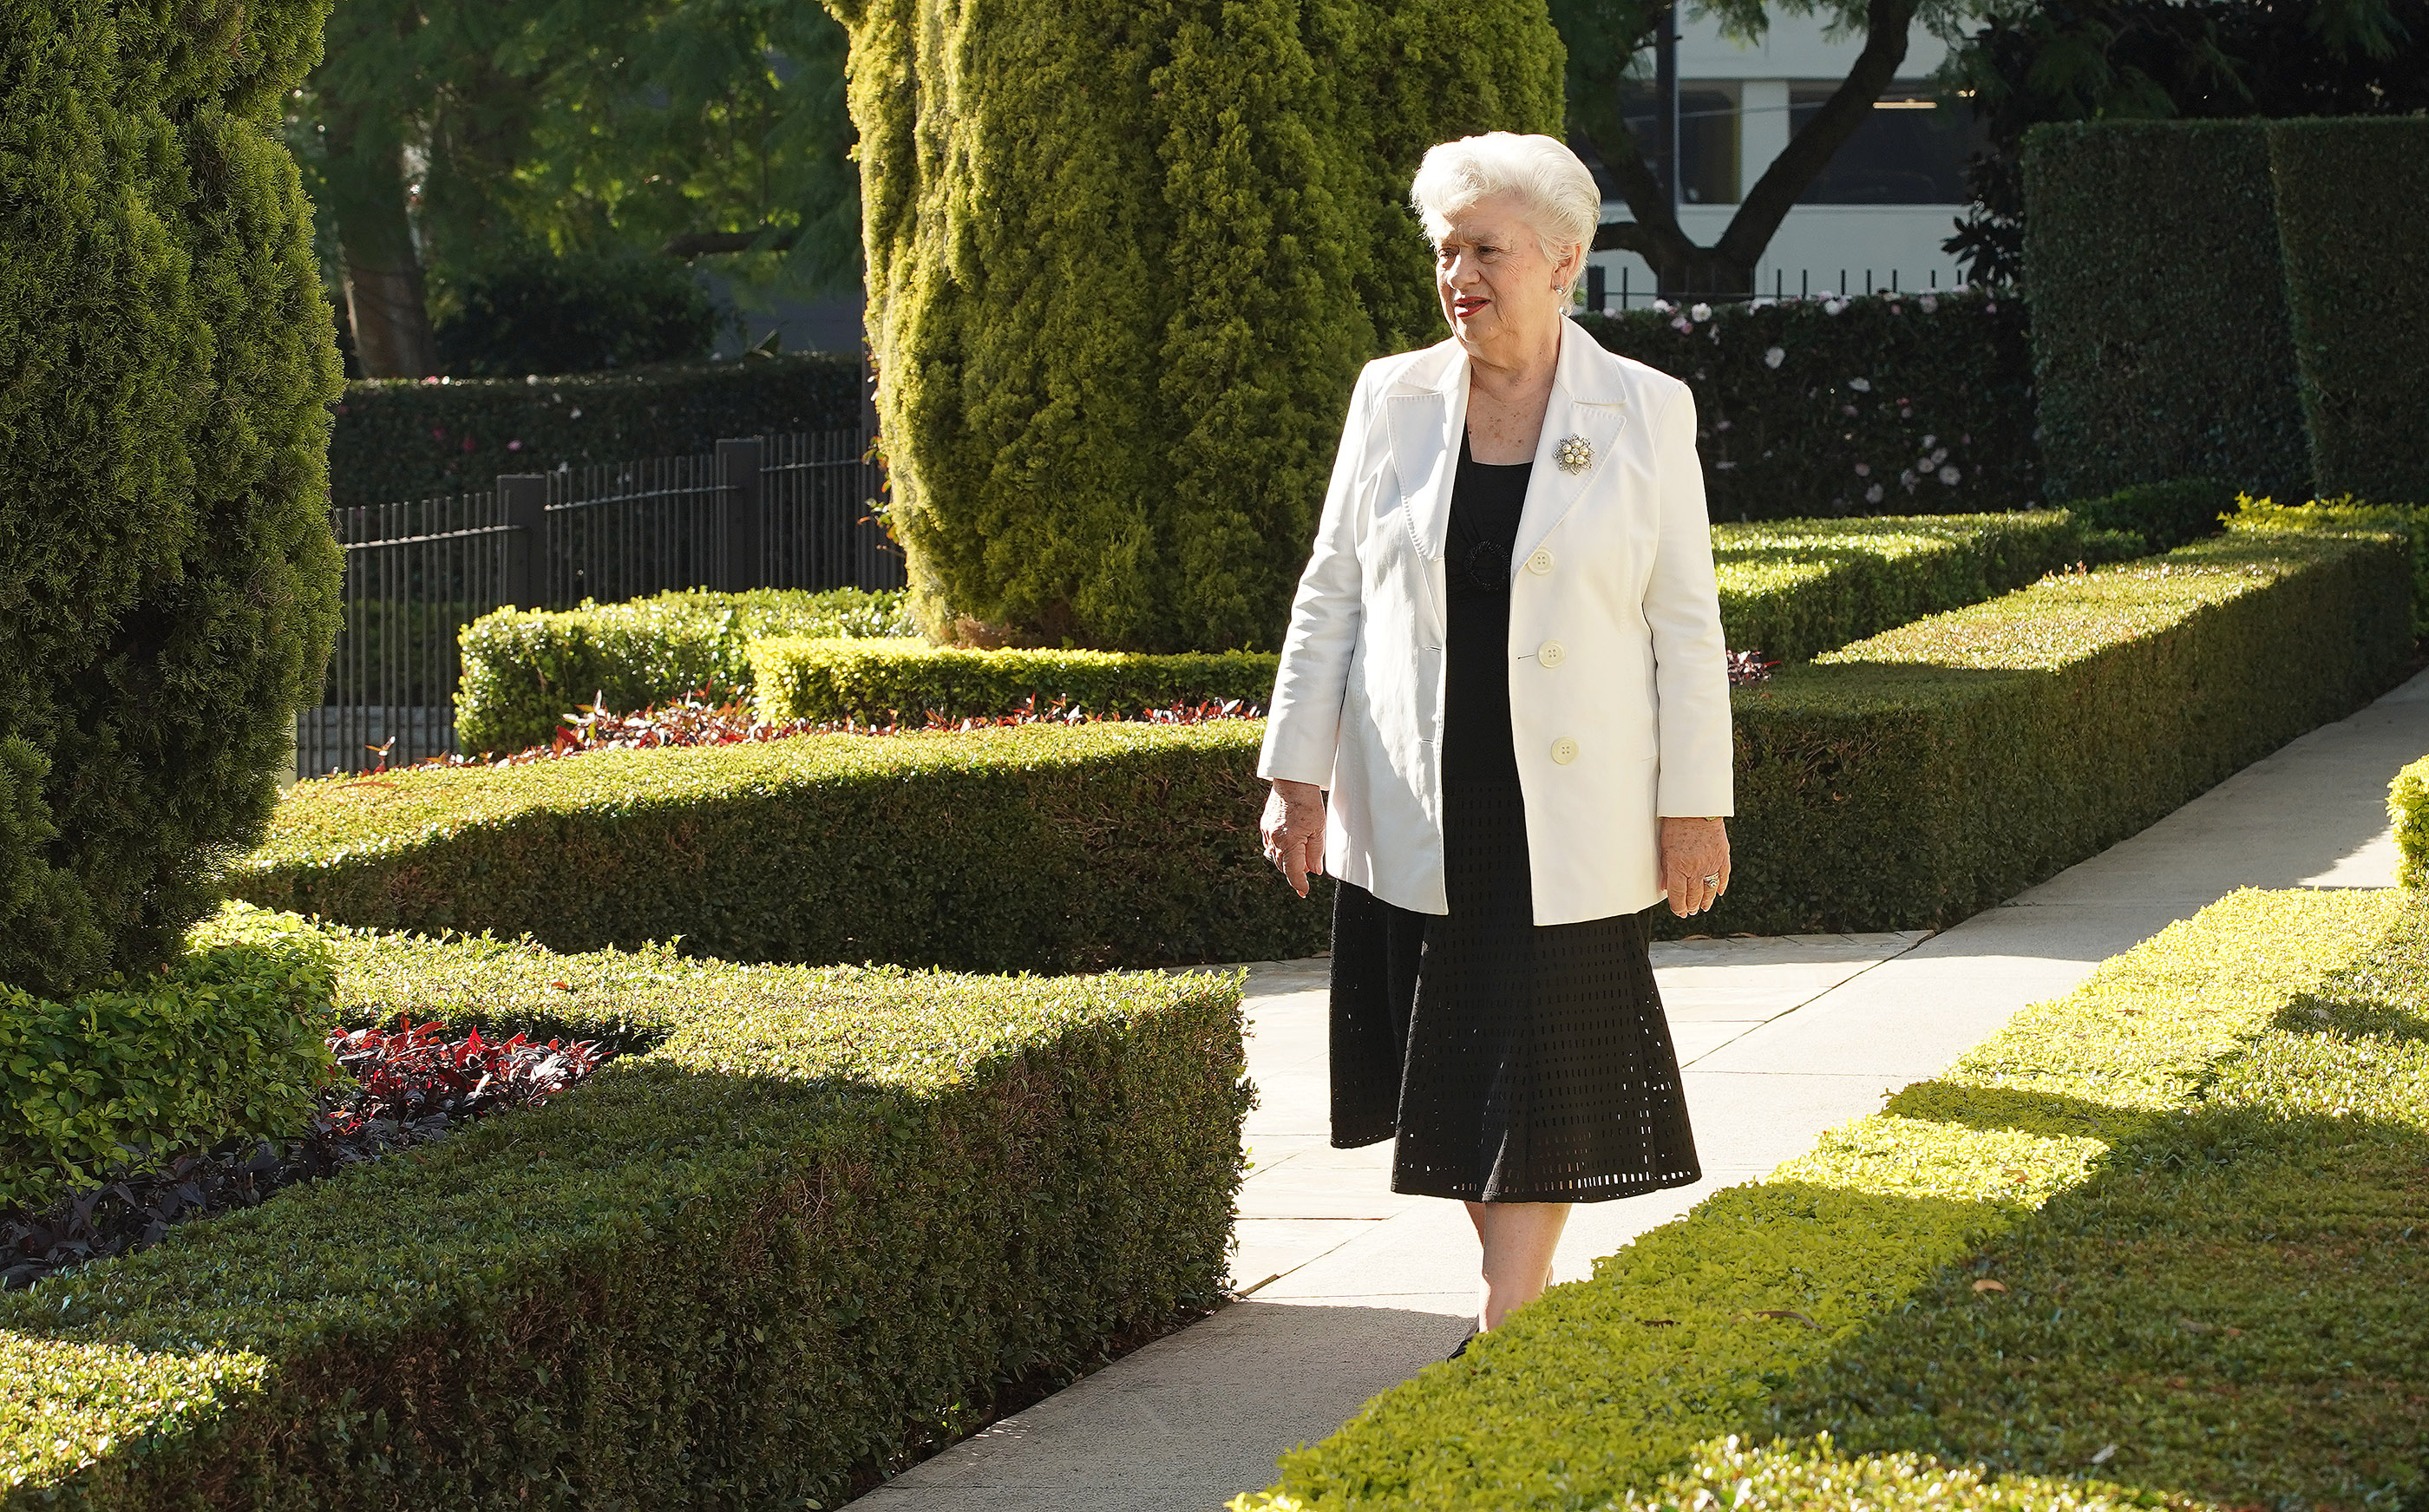 Elva Merle Mitchell walks the grounds at the Sydney Australia Temple on May 18, 2019, in Sydney, Australia.